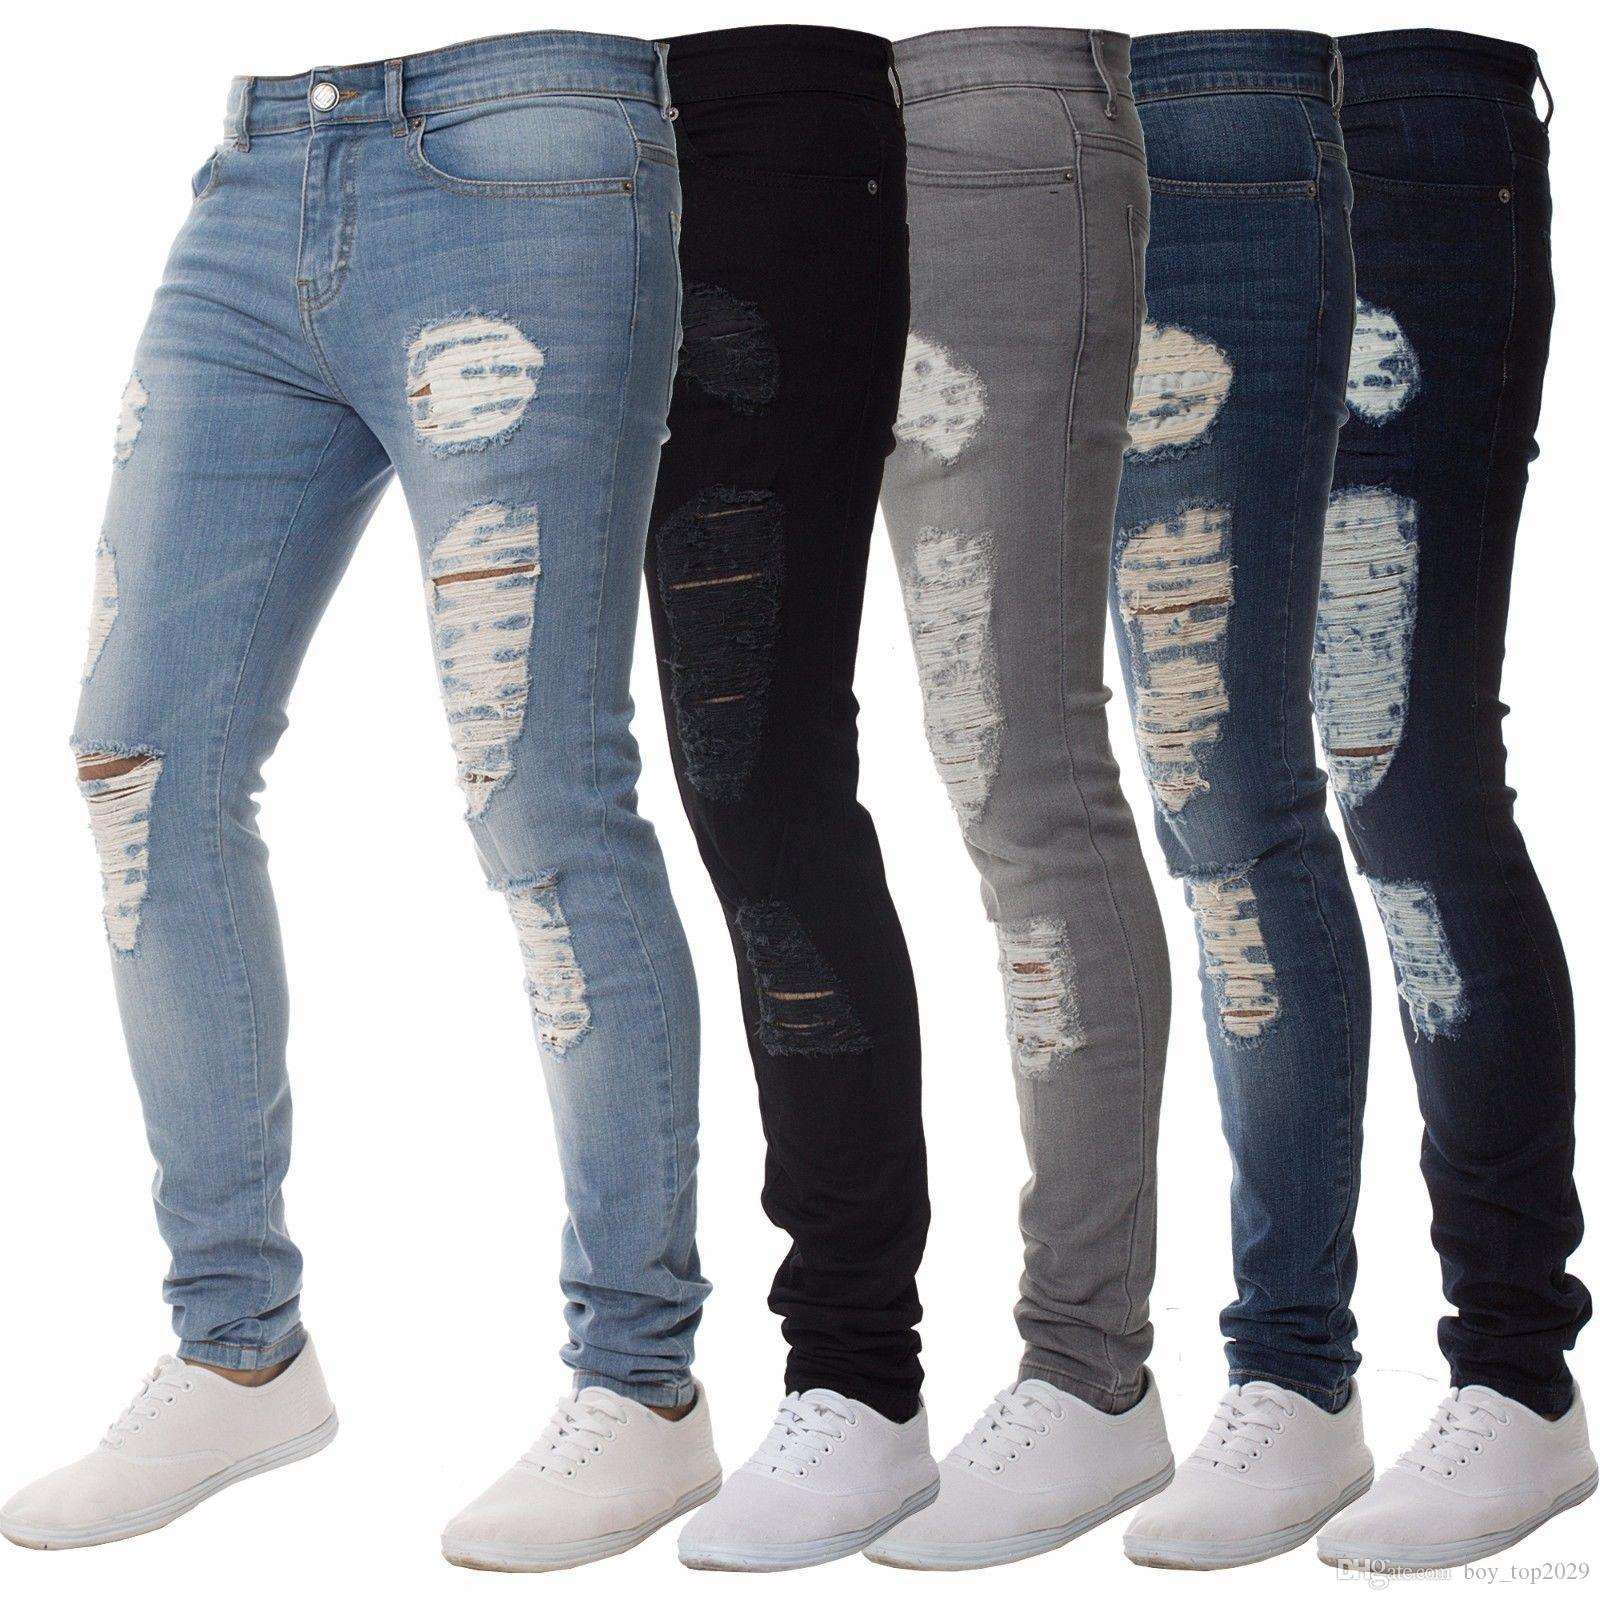 2018 New Cross-country For Fashion Casual Men's jeans Personality Hole Slim Feet jeans handsome wild cowboy